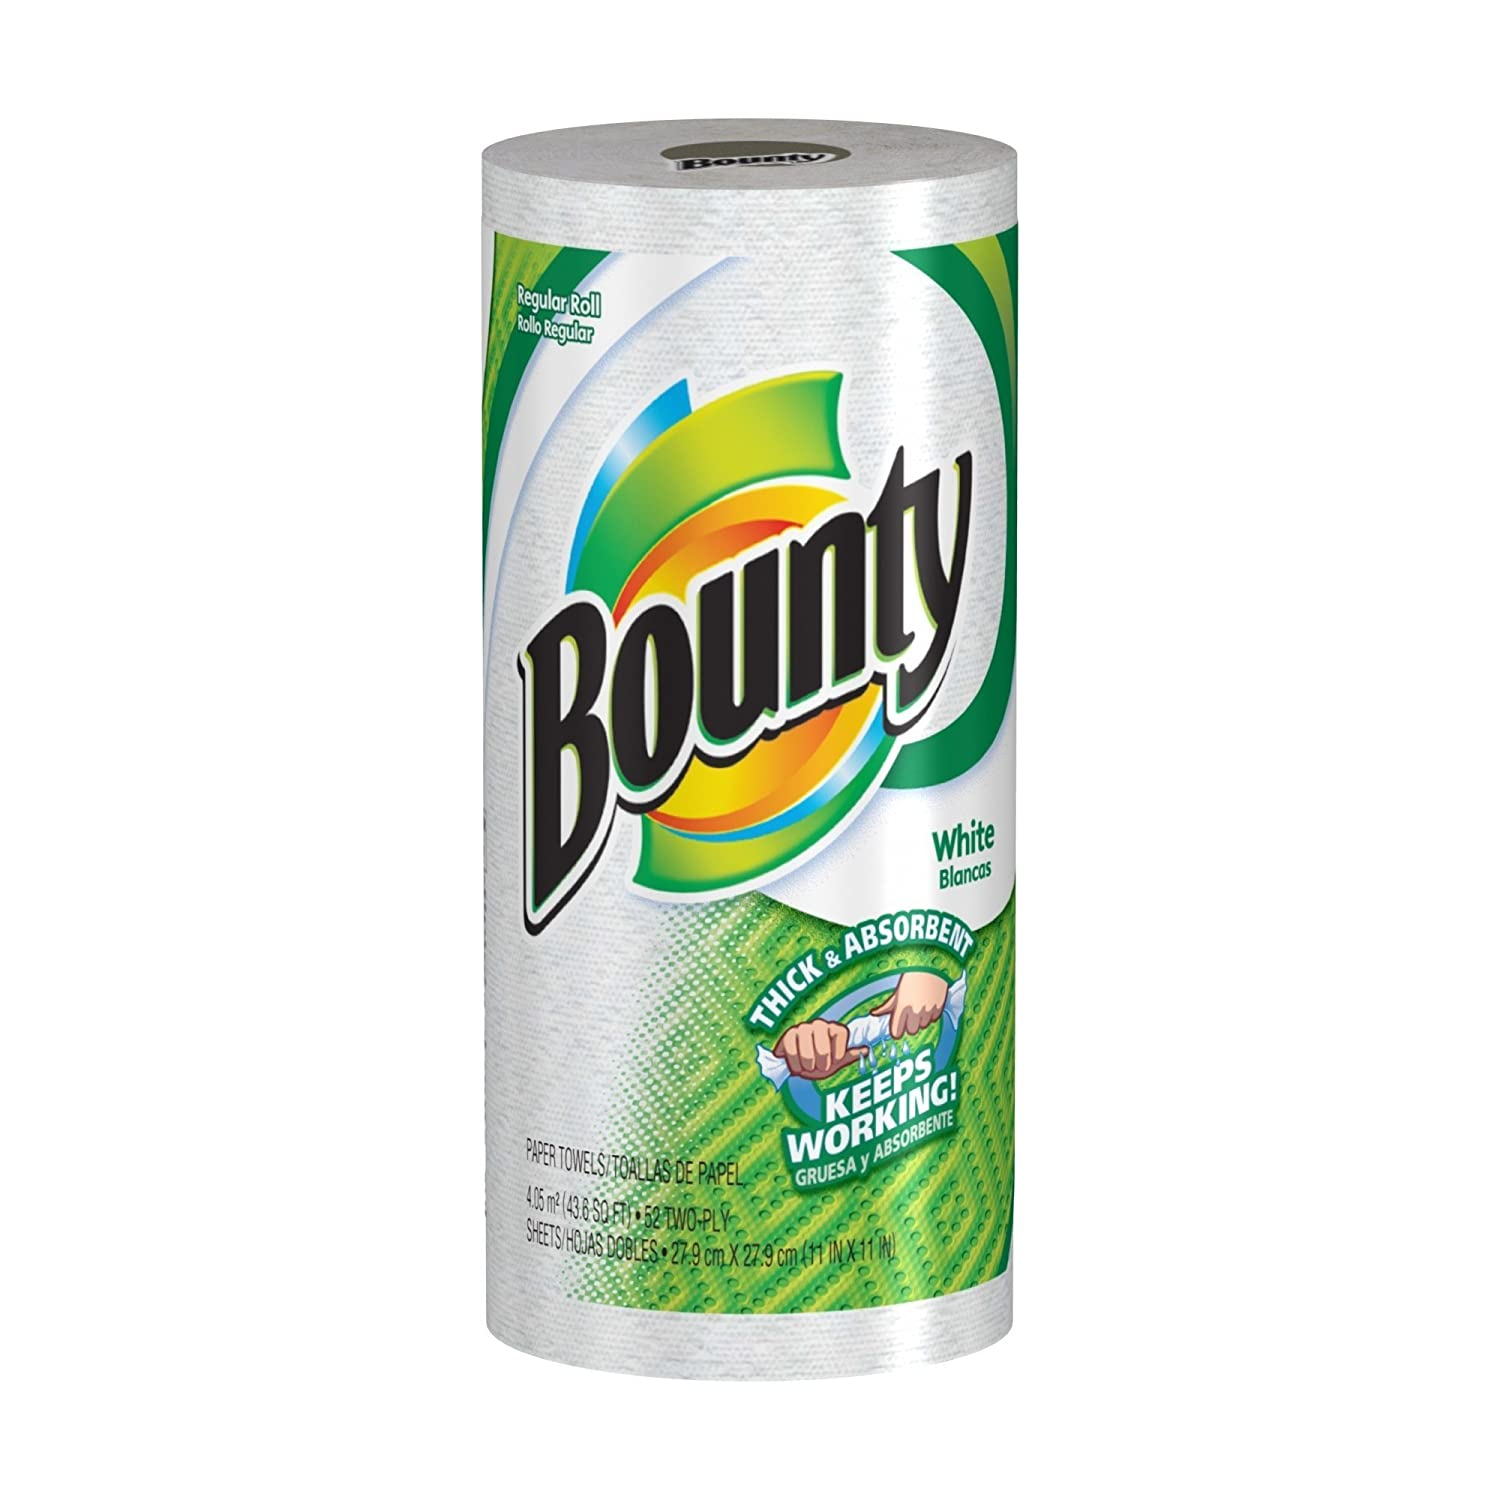 Bounty paper towels are 2X more absorbent, so you can use less! And the best part is Bounty select-a-size sheets allow you to control just how much you use, depending on the size of the mess! Choose the paper towel you can count on: Bounty, the quicker picker upper.